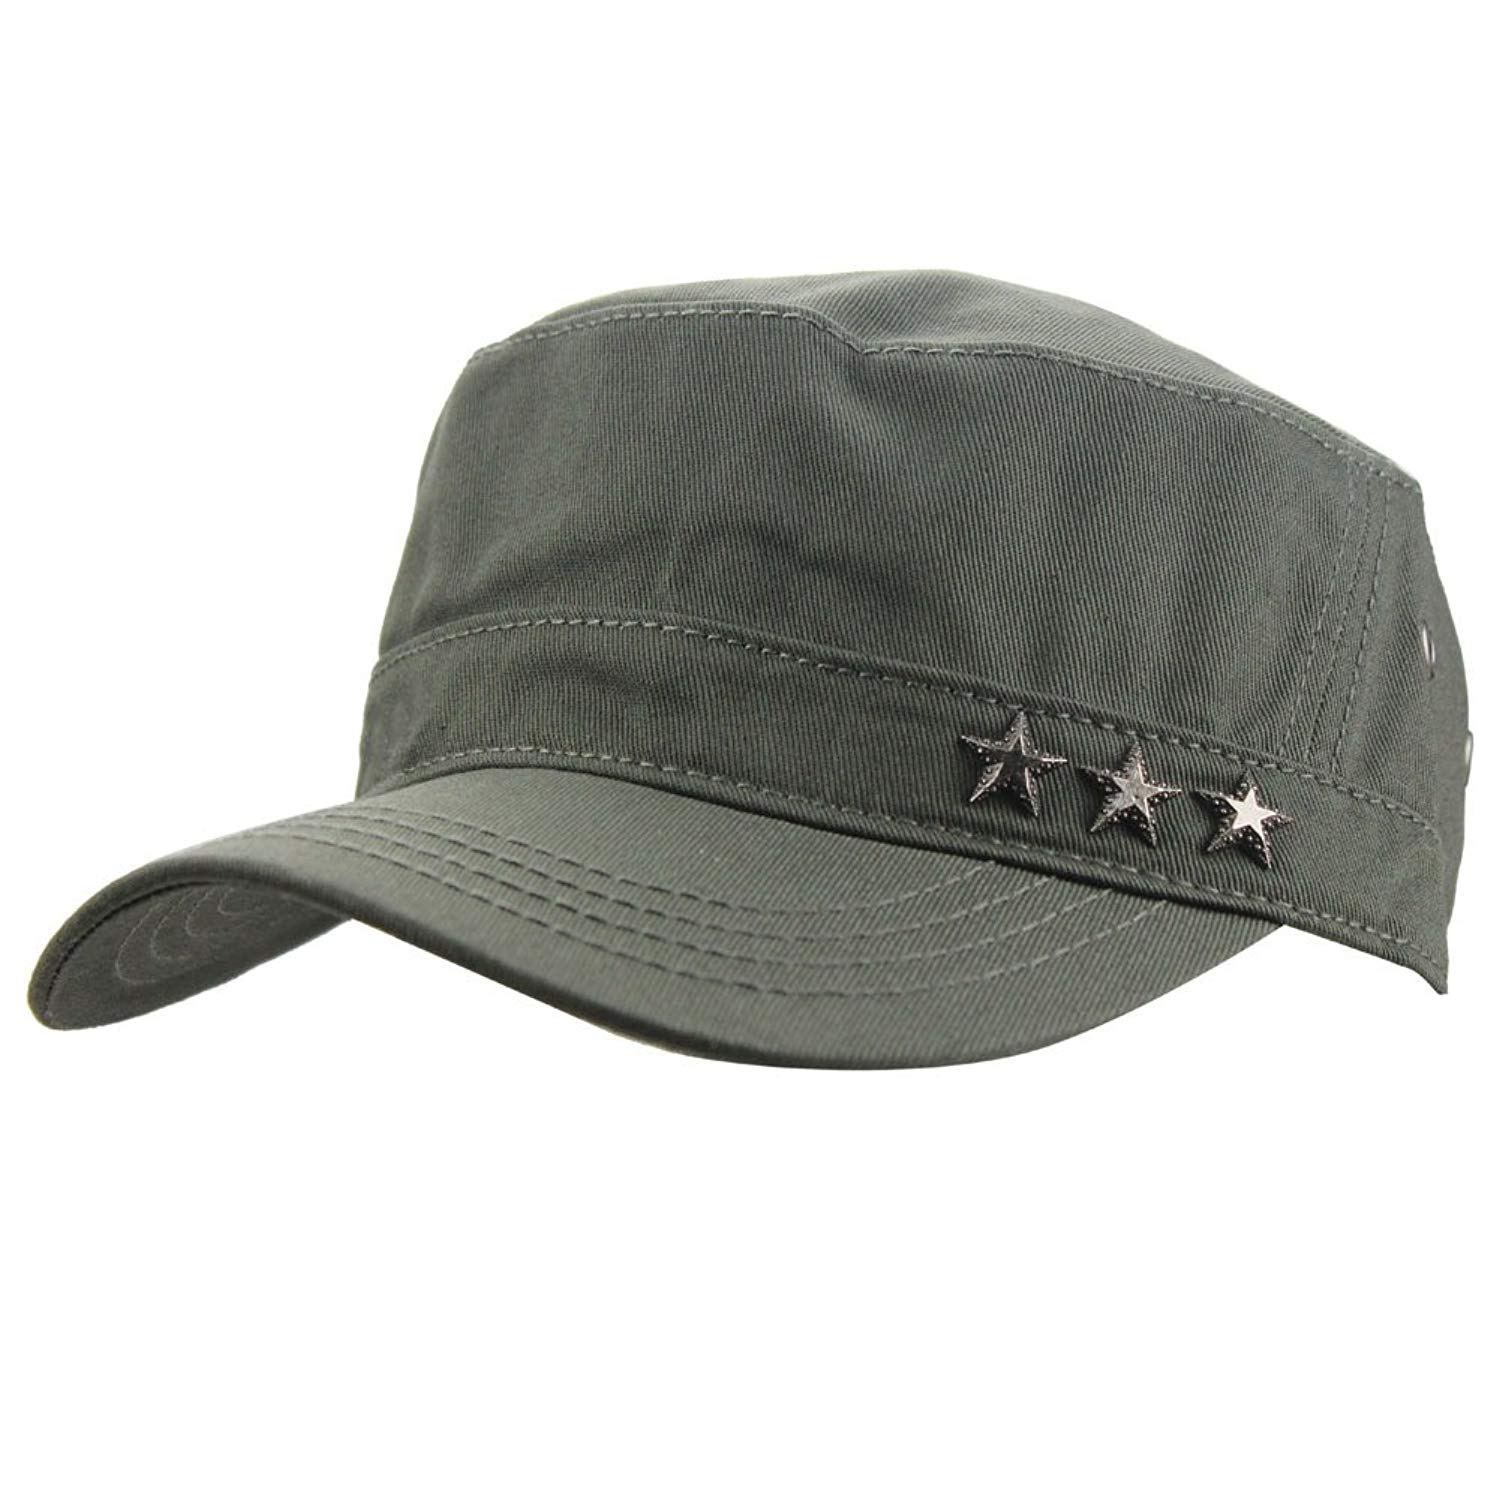 eYourlife2012 Mens Cotton Stars Flat Top Military Army Travel Sports Sun Baseball Hat Cap Hats